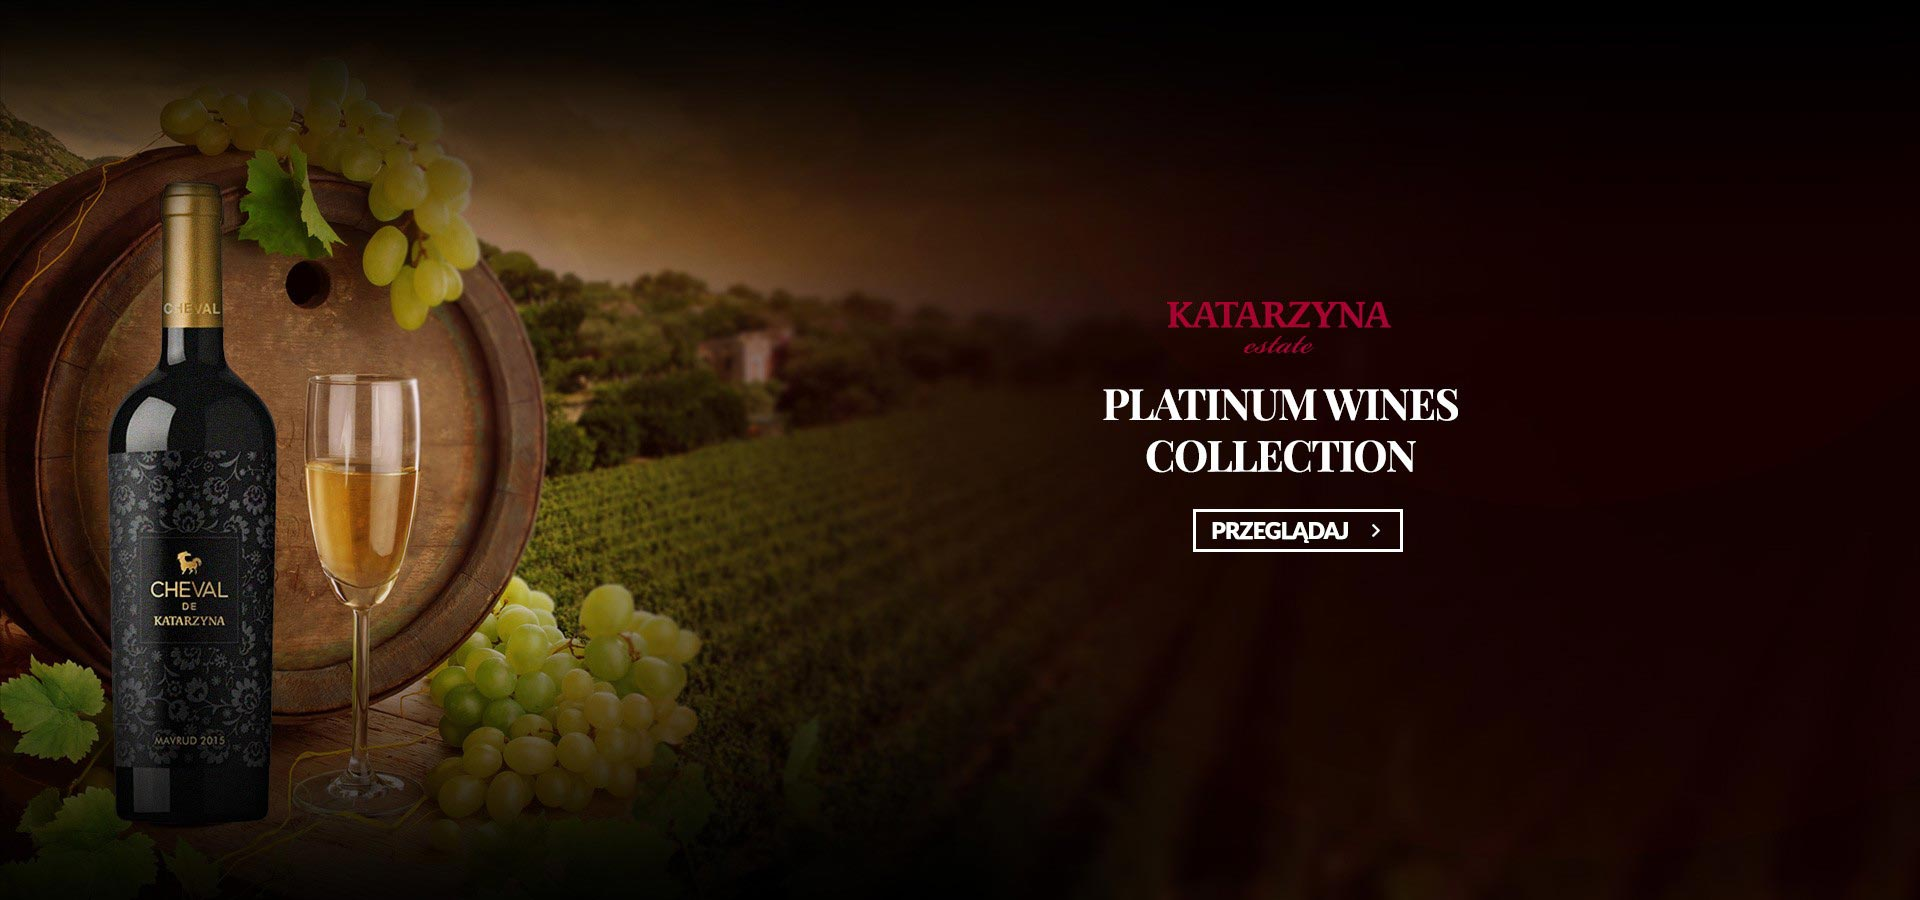 Platinum wines collection